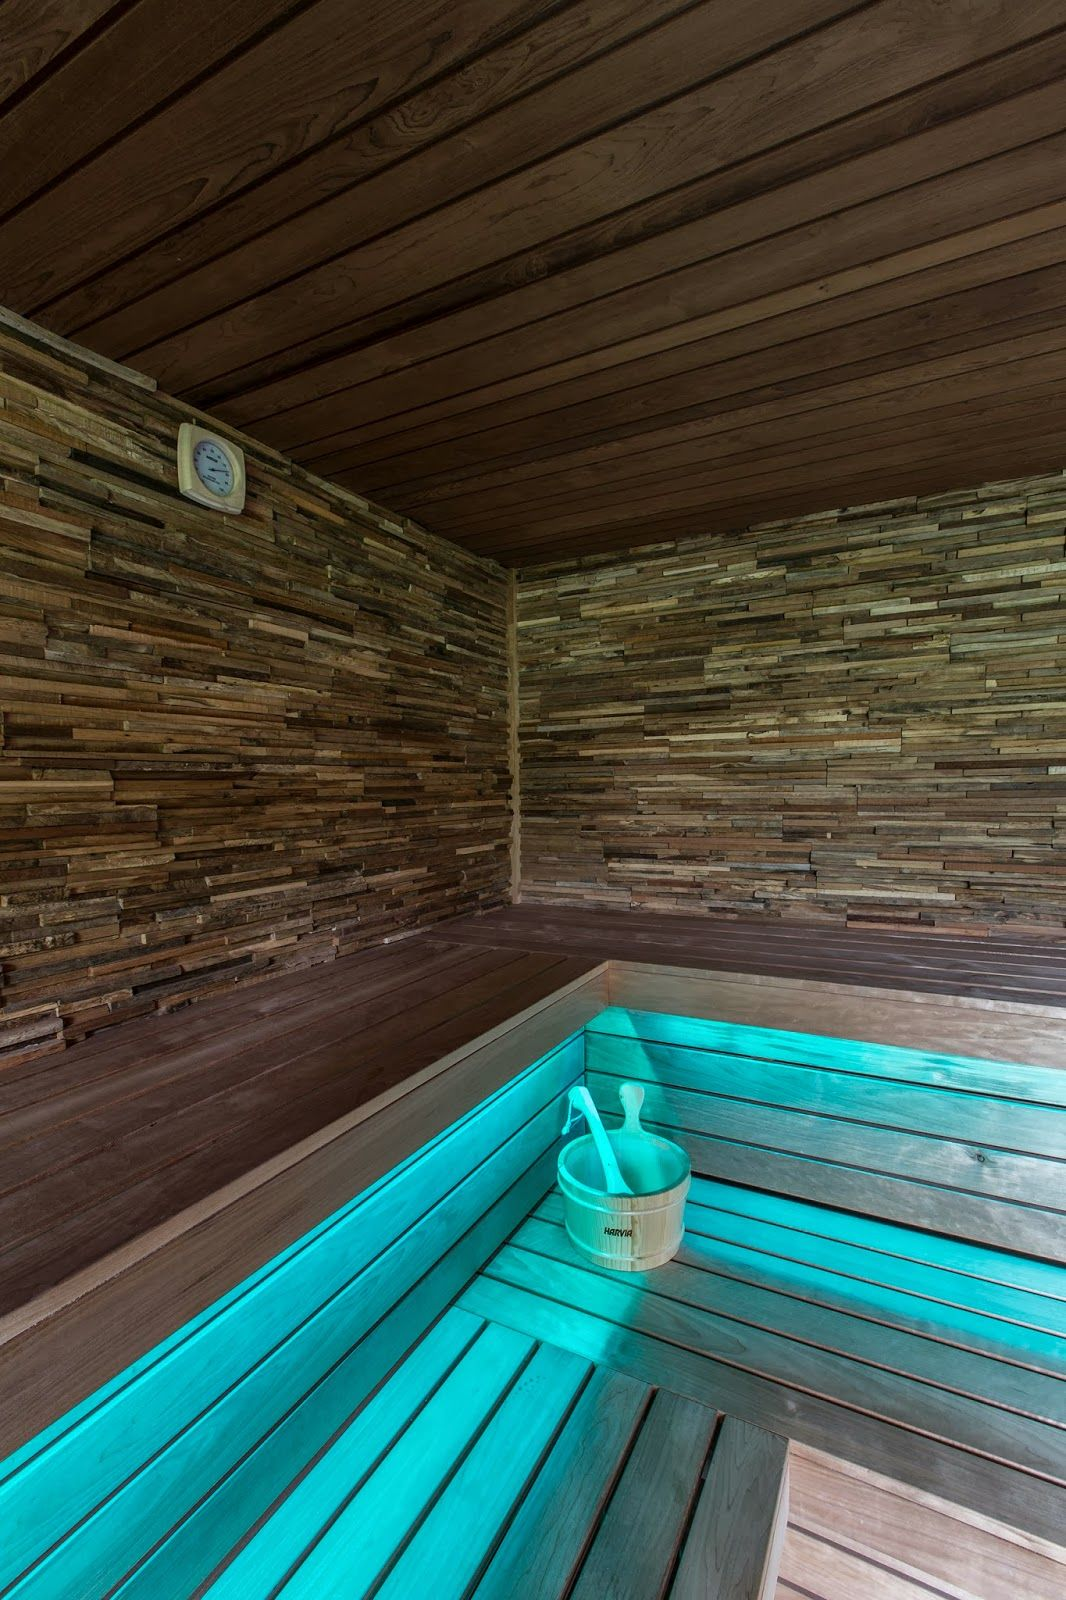 sauna met led verlichting sauna ideas saunas interior design wellness room